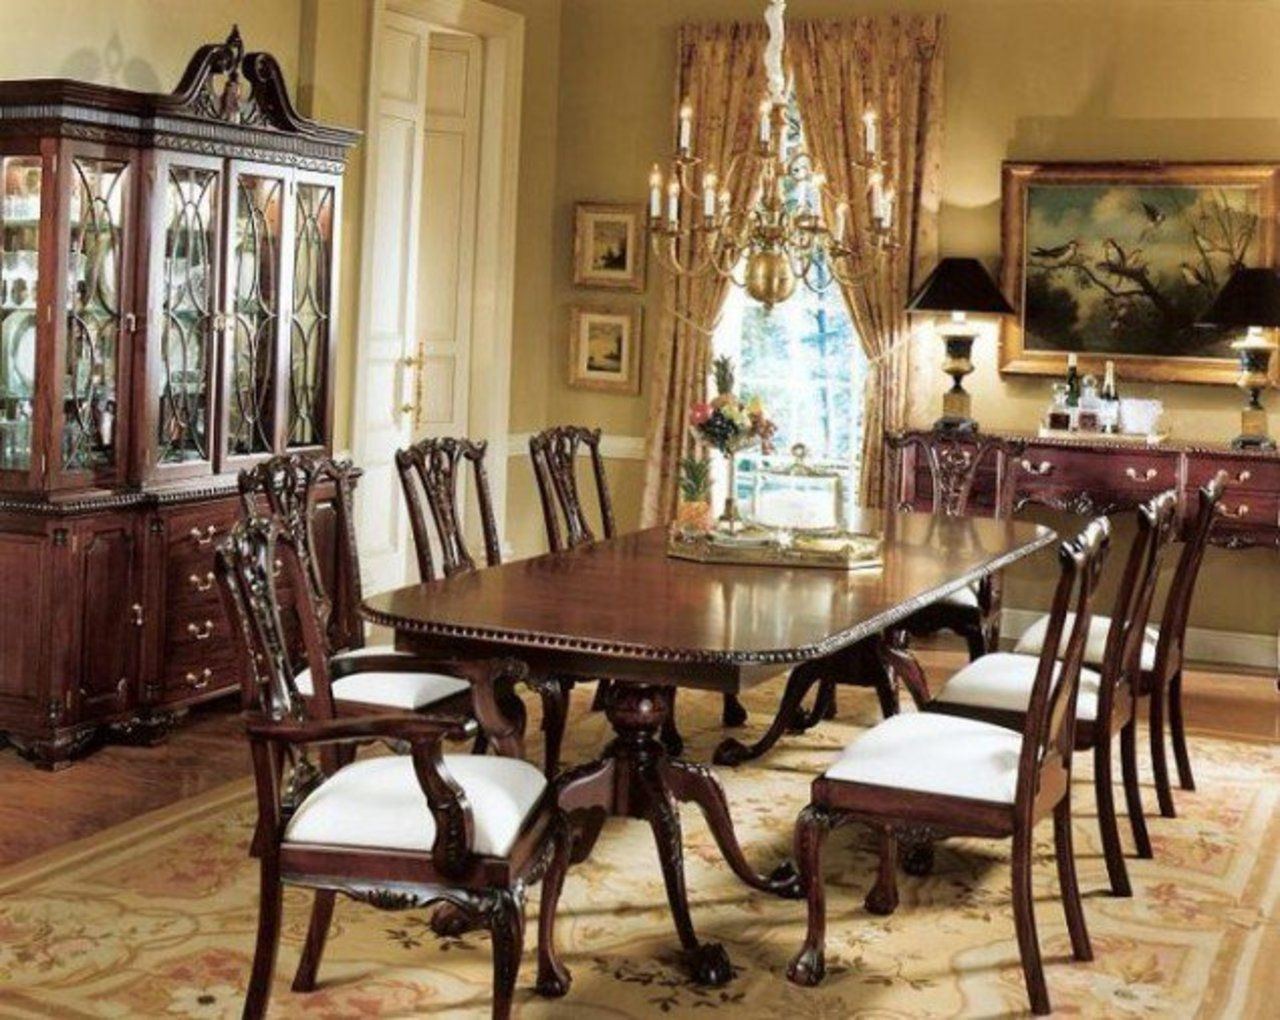 Chippendale Dining Room Captivating Chippendalediningchaircollectionfrommahogany635X506_Large Design Ideas